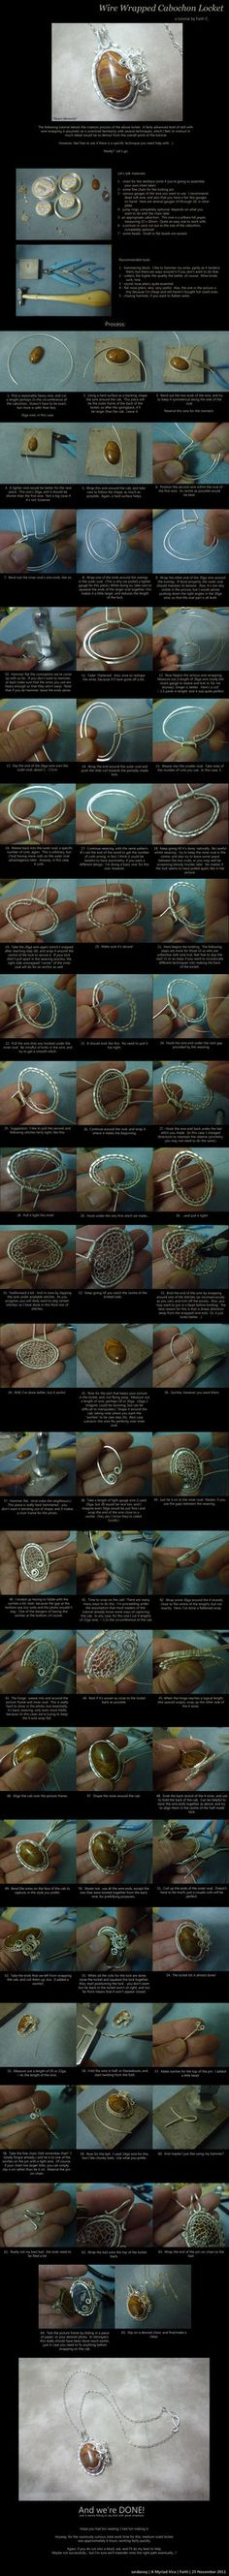 wired wrap cabochon tutorial